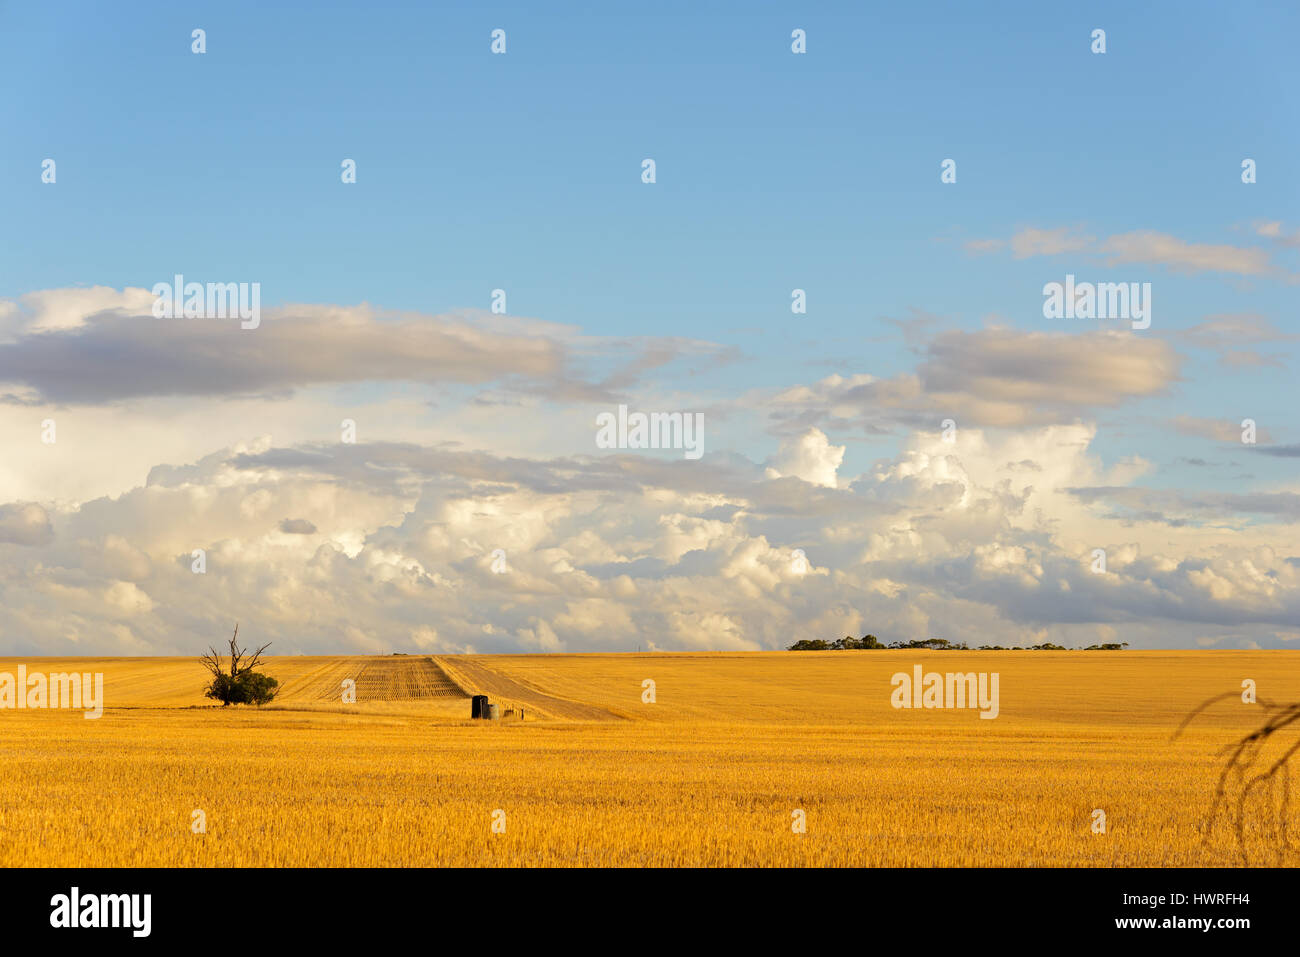 Wheatbelt of Western Australia, Harvested fields, Australia - Stock Image